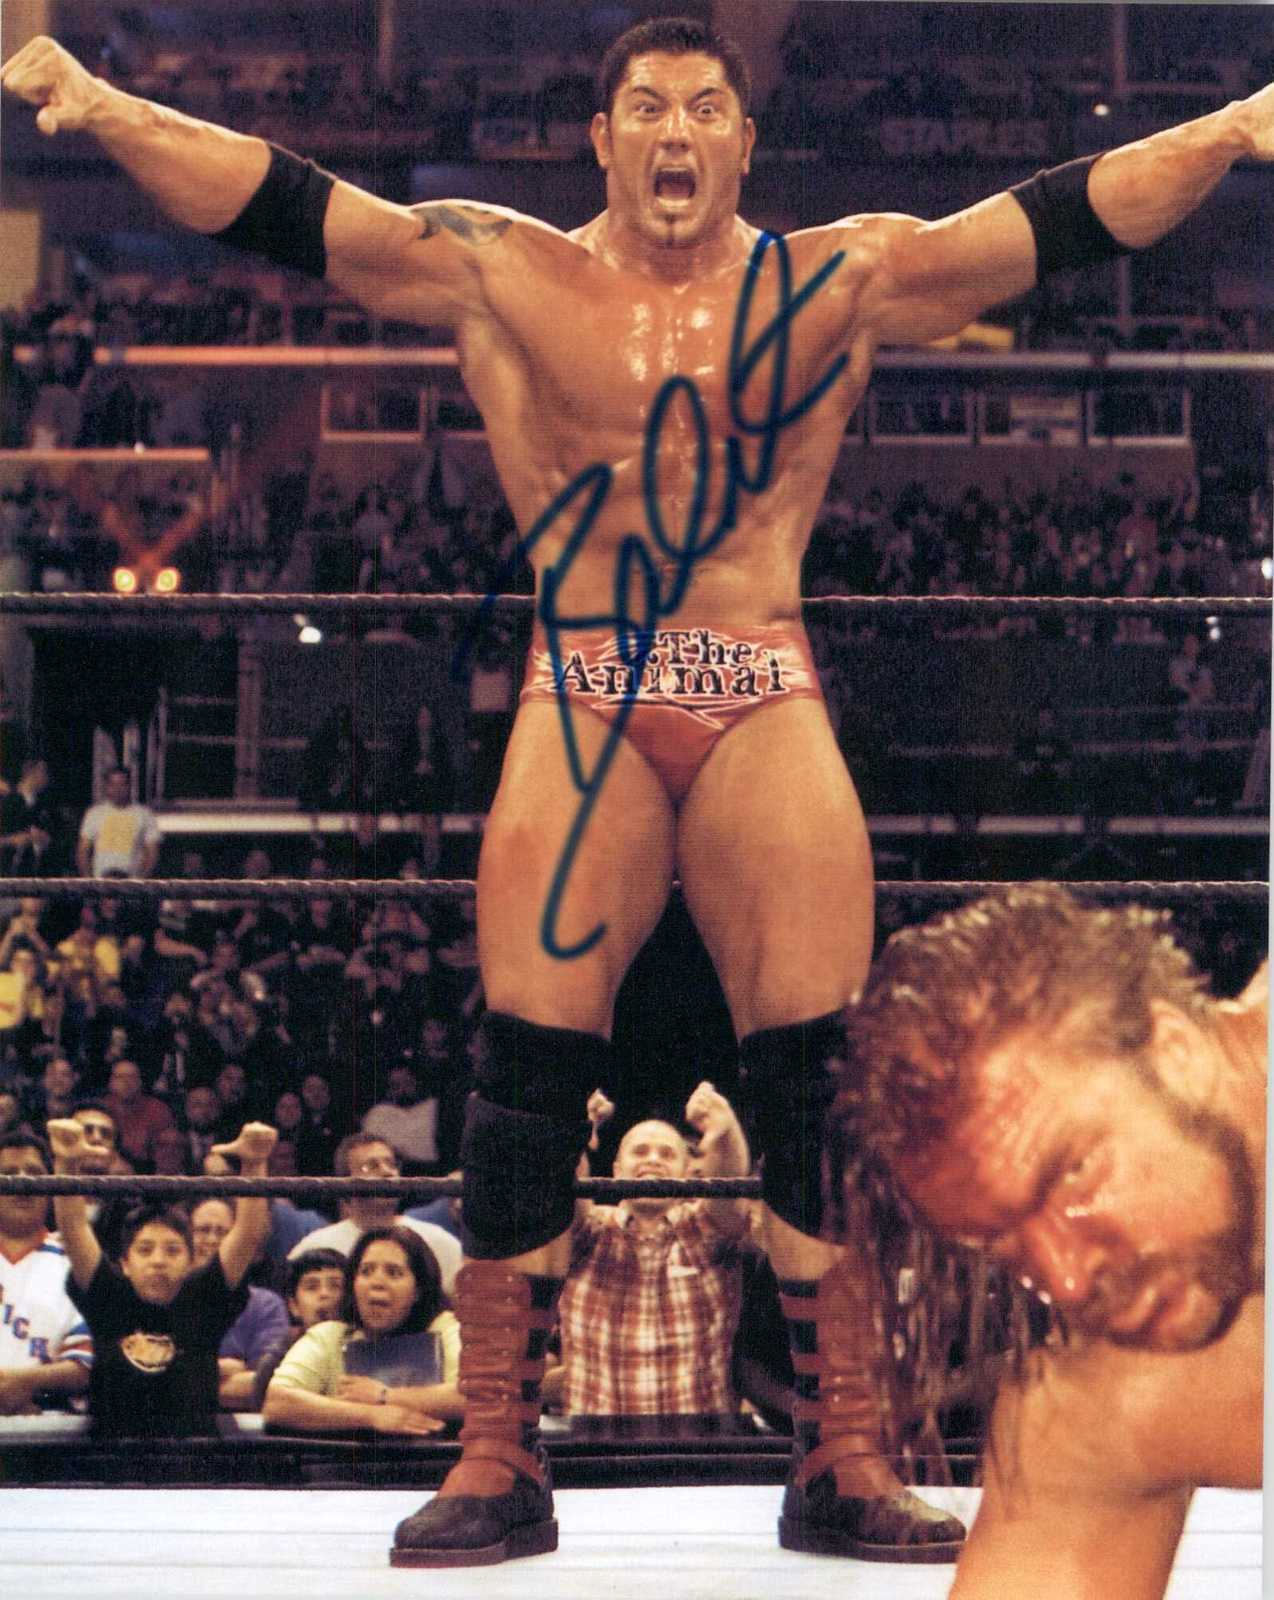 Primary image for Dave Batista Signed Autographed Glossy 8x10 Photo